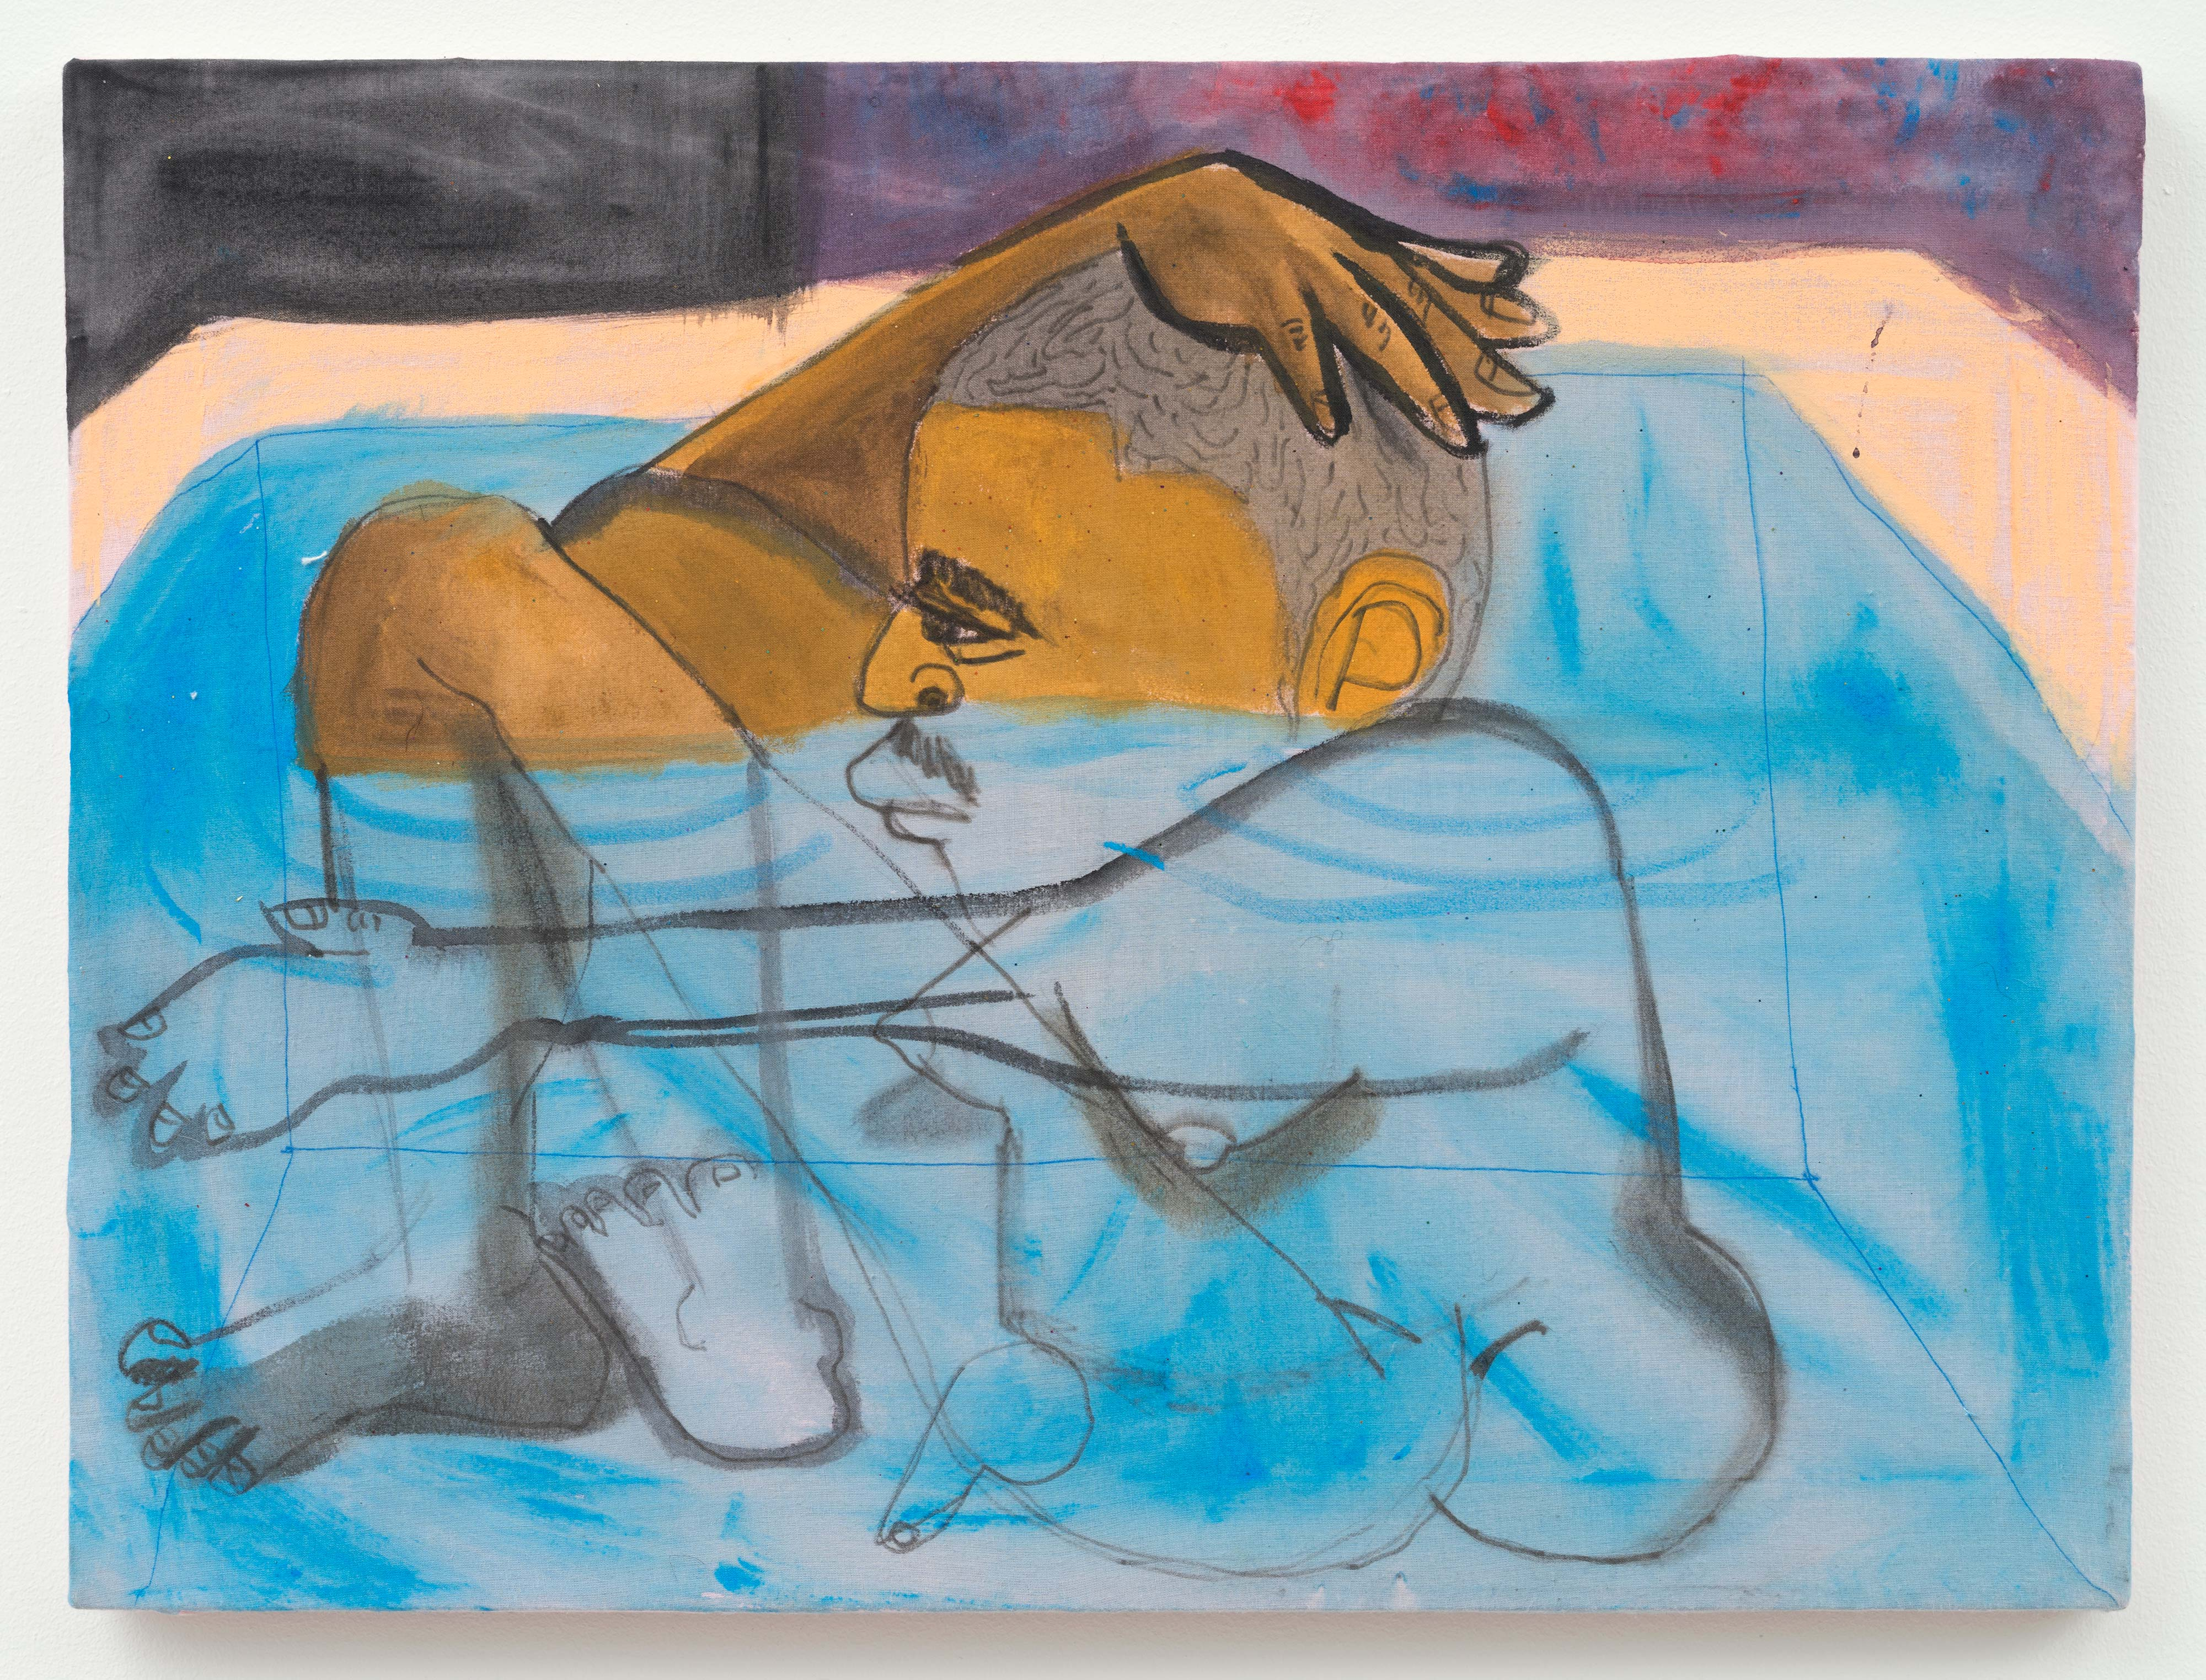 Jonathan Lyndon Chase<br>Man in Tub<br>2015<br>Acrylic and glitter on cotton<br>18 x 24 in (45.72 x 60.96 cm)